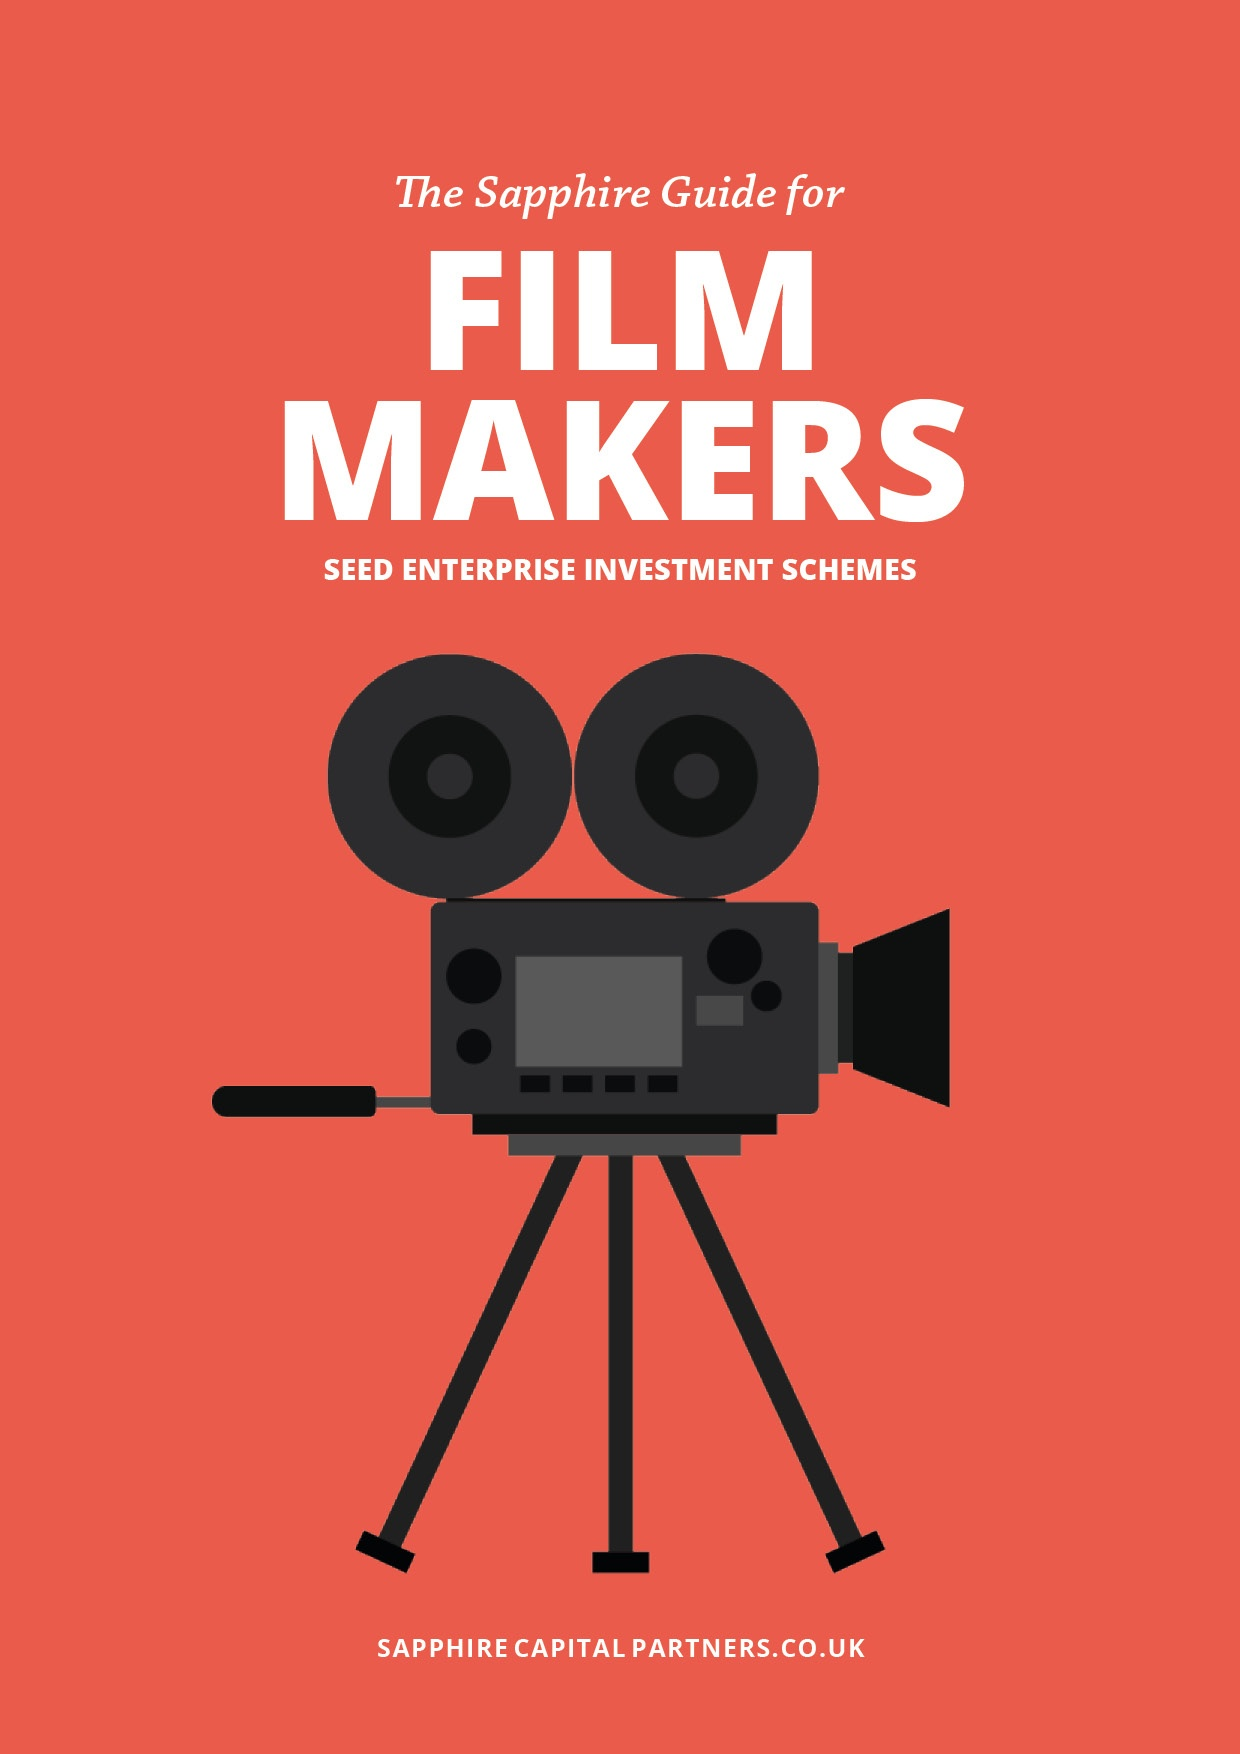 The Sapphire Guide for SEIS and Film Makers